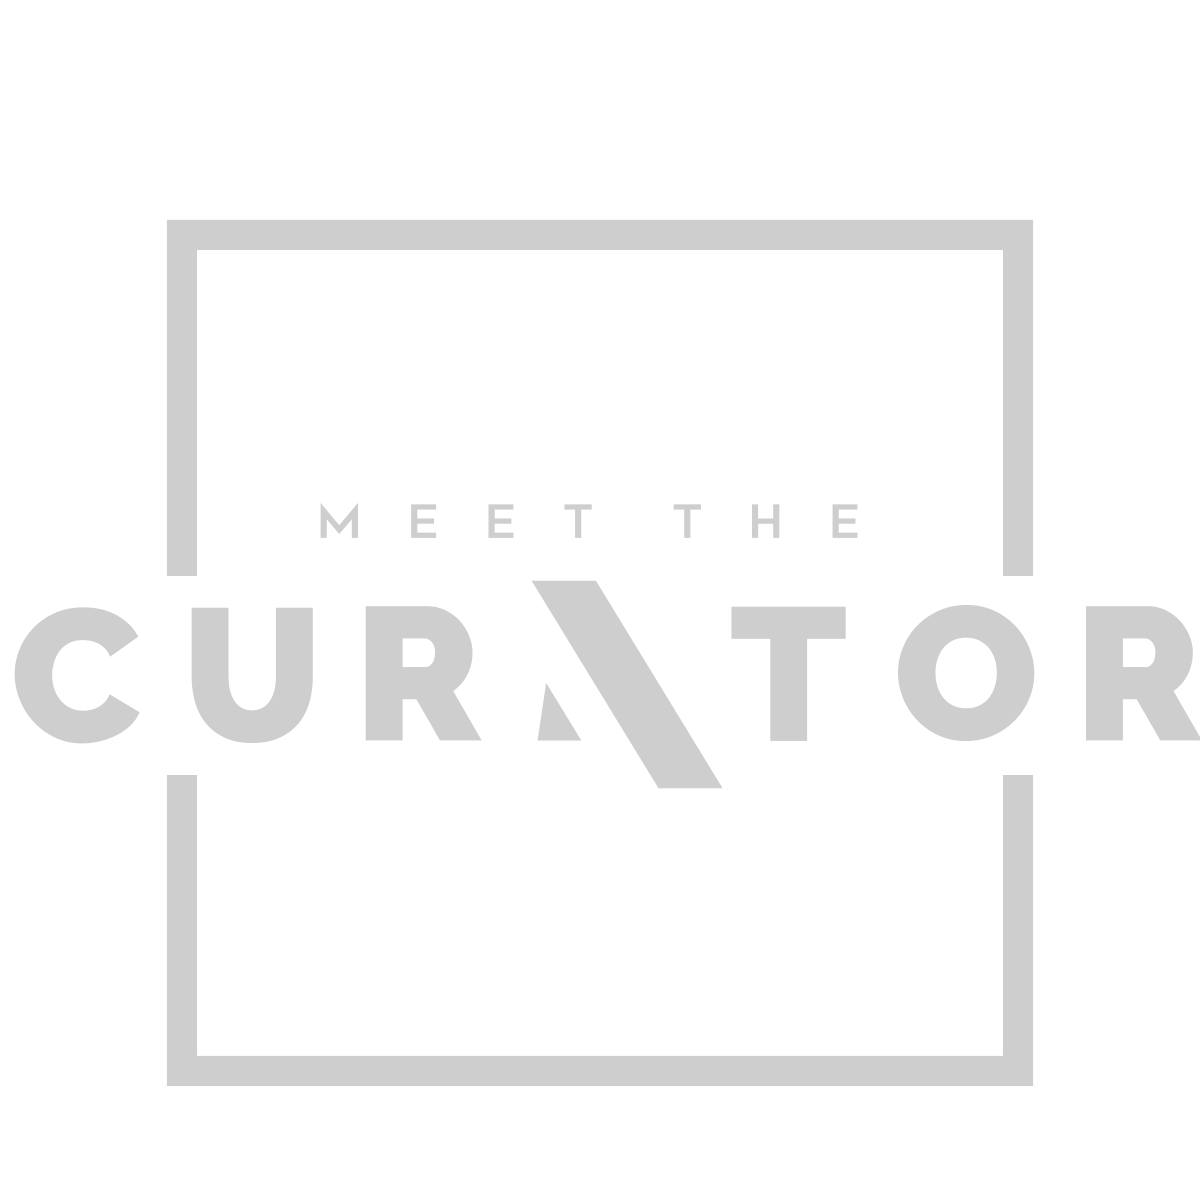 Meet The Curator: The Official Brand Shirt